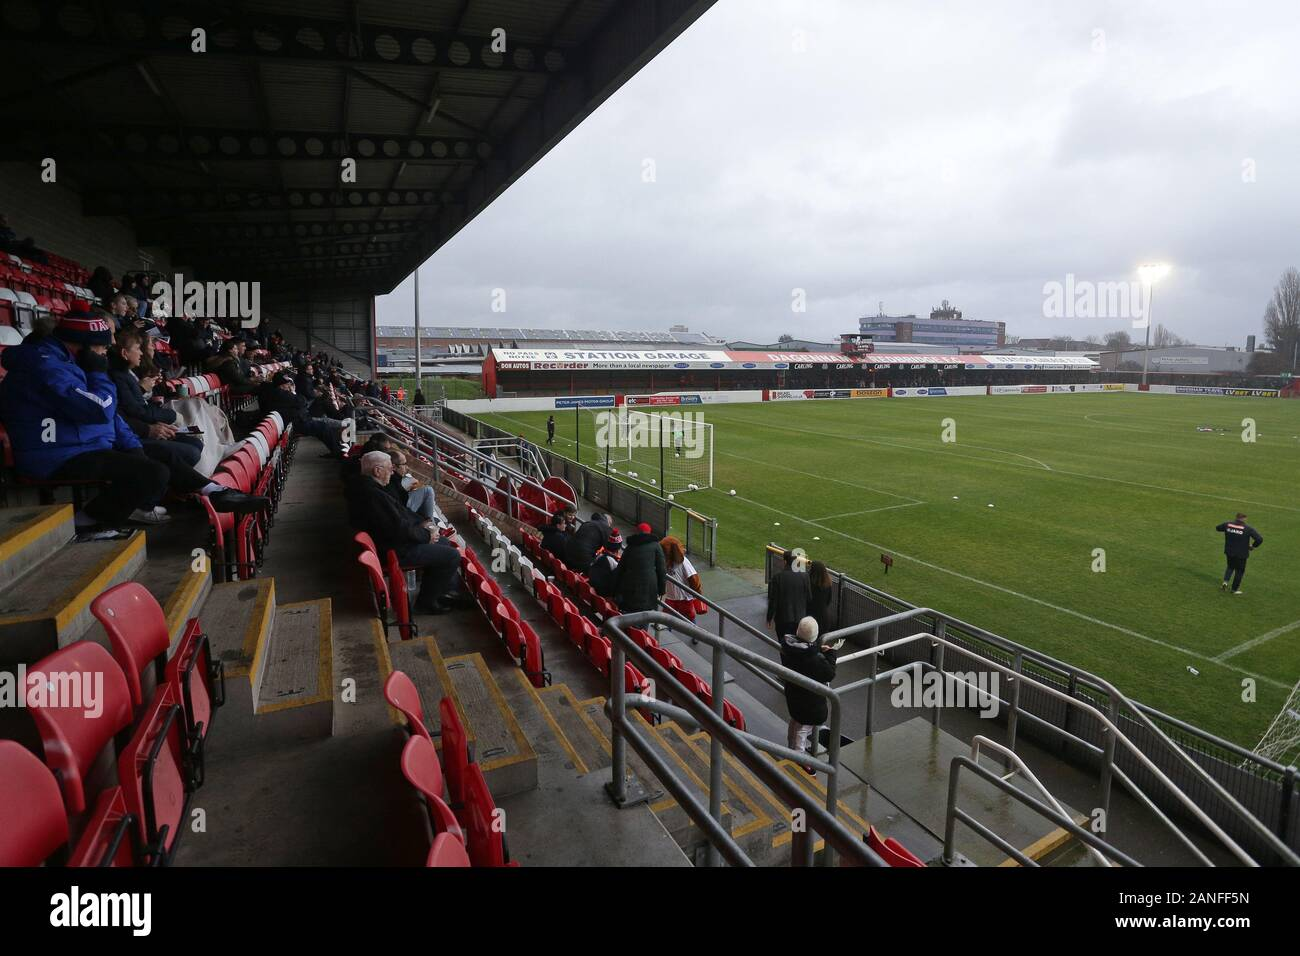 General view of the ground during Dagenham & Redbridge vs Ebbsfleet United, Vanarama National League Football at the Chigwell Construction Stadium on Stock Photo